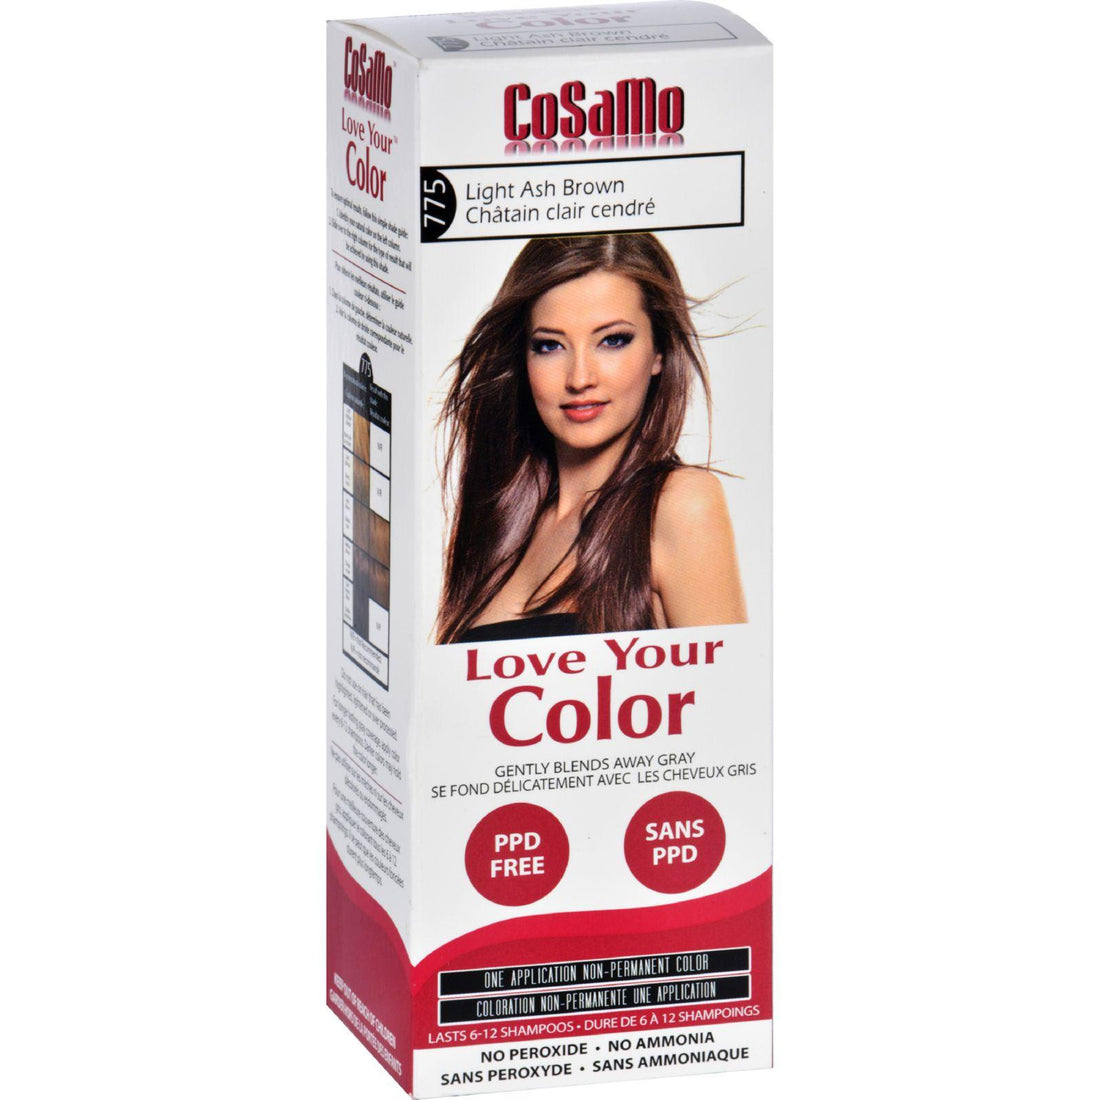 Mother Mantis: Love Your Color Hair Color - Cosamo - Non Permanent - Lt Ash Brown - 1 Ct Love Your Color